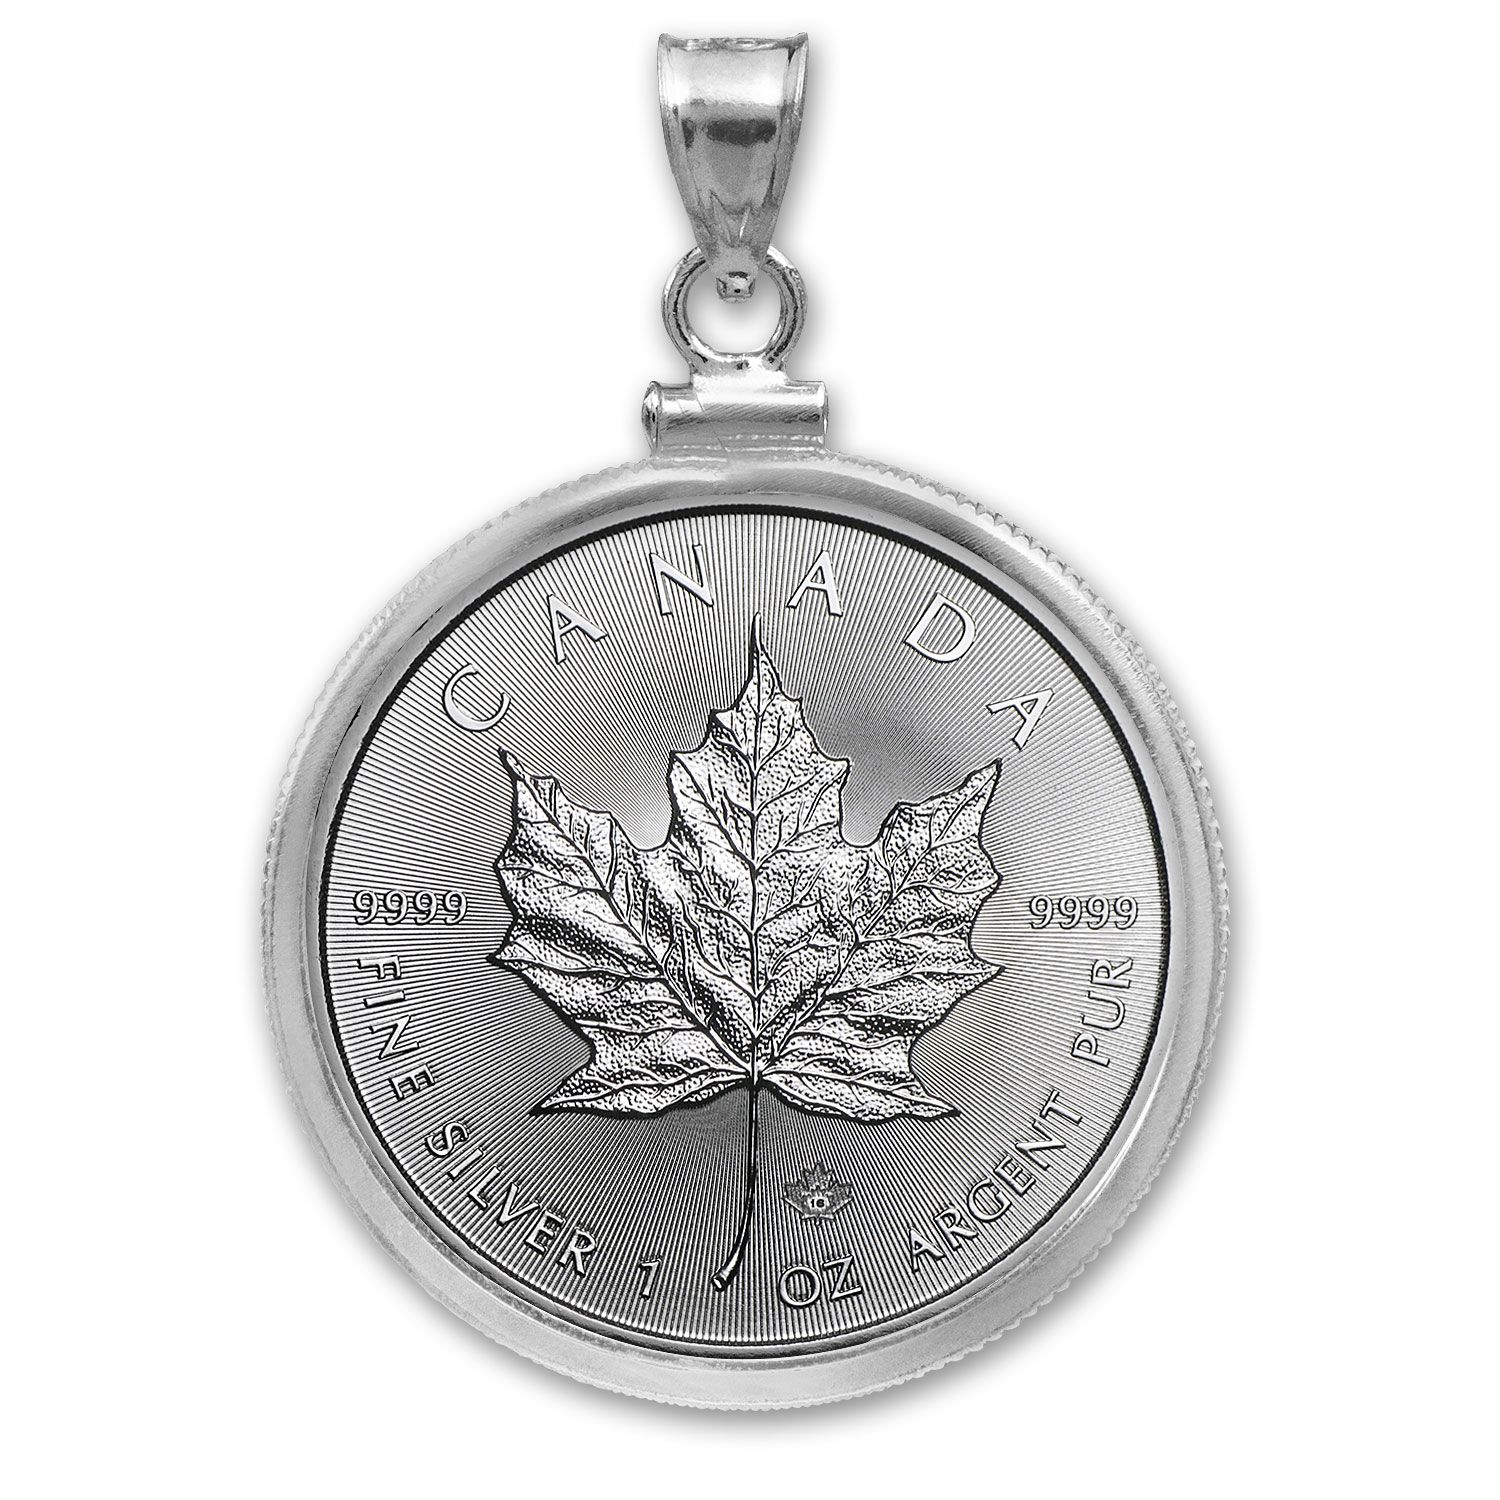 2016 1 oz Silver Maple Leaf Pendant (Plain Front Bezel)